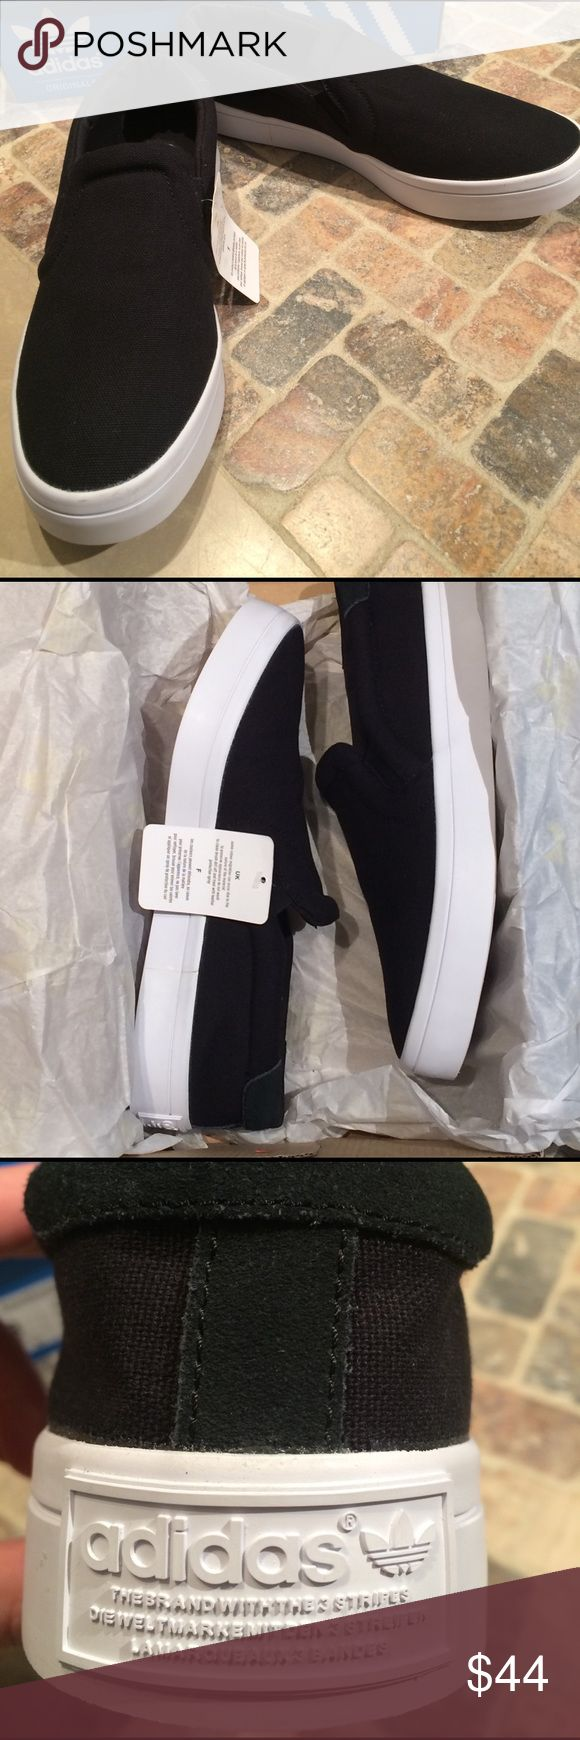 Adidas casual slip-on sneaks women 8&9 available New with box, women's Courtvantage slip on by adidas originals. Black canvas uppers, & white bottoms. Adidas Shoes Sneakers